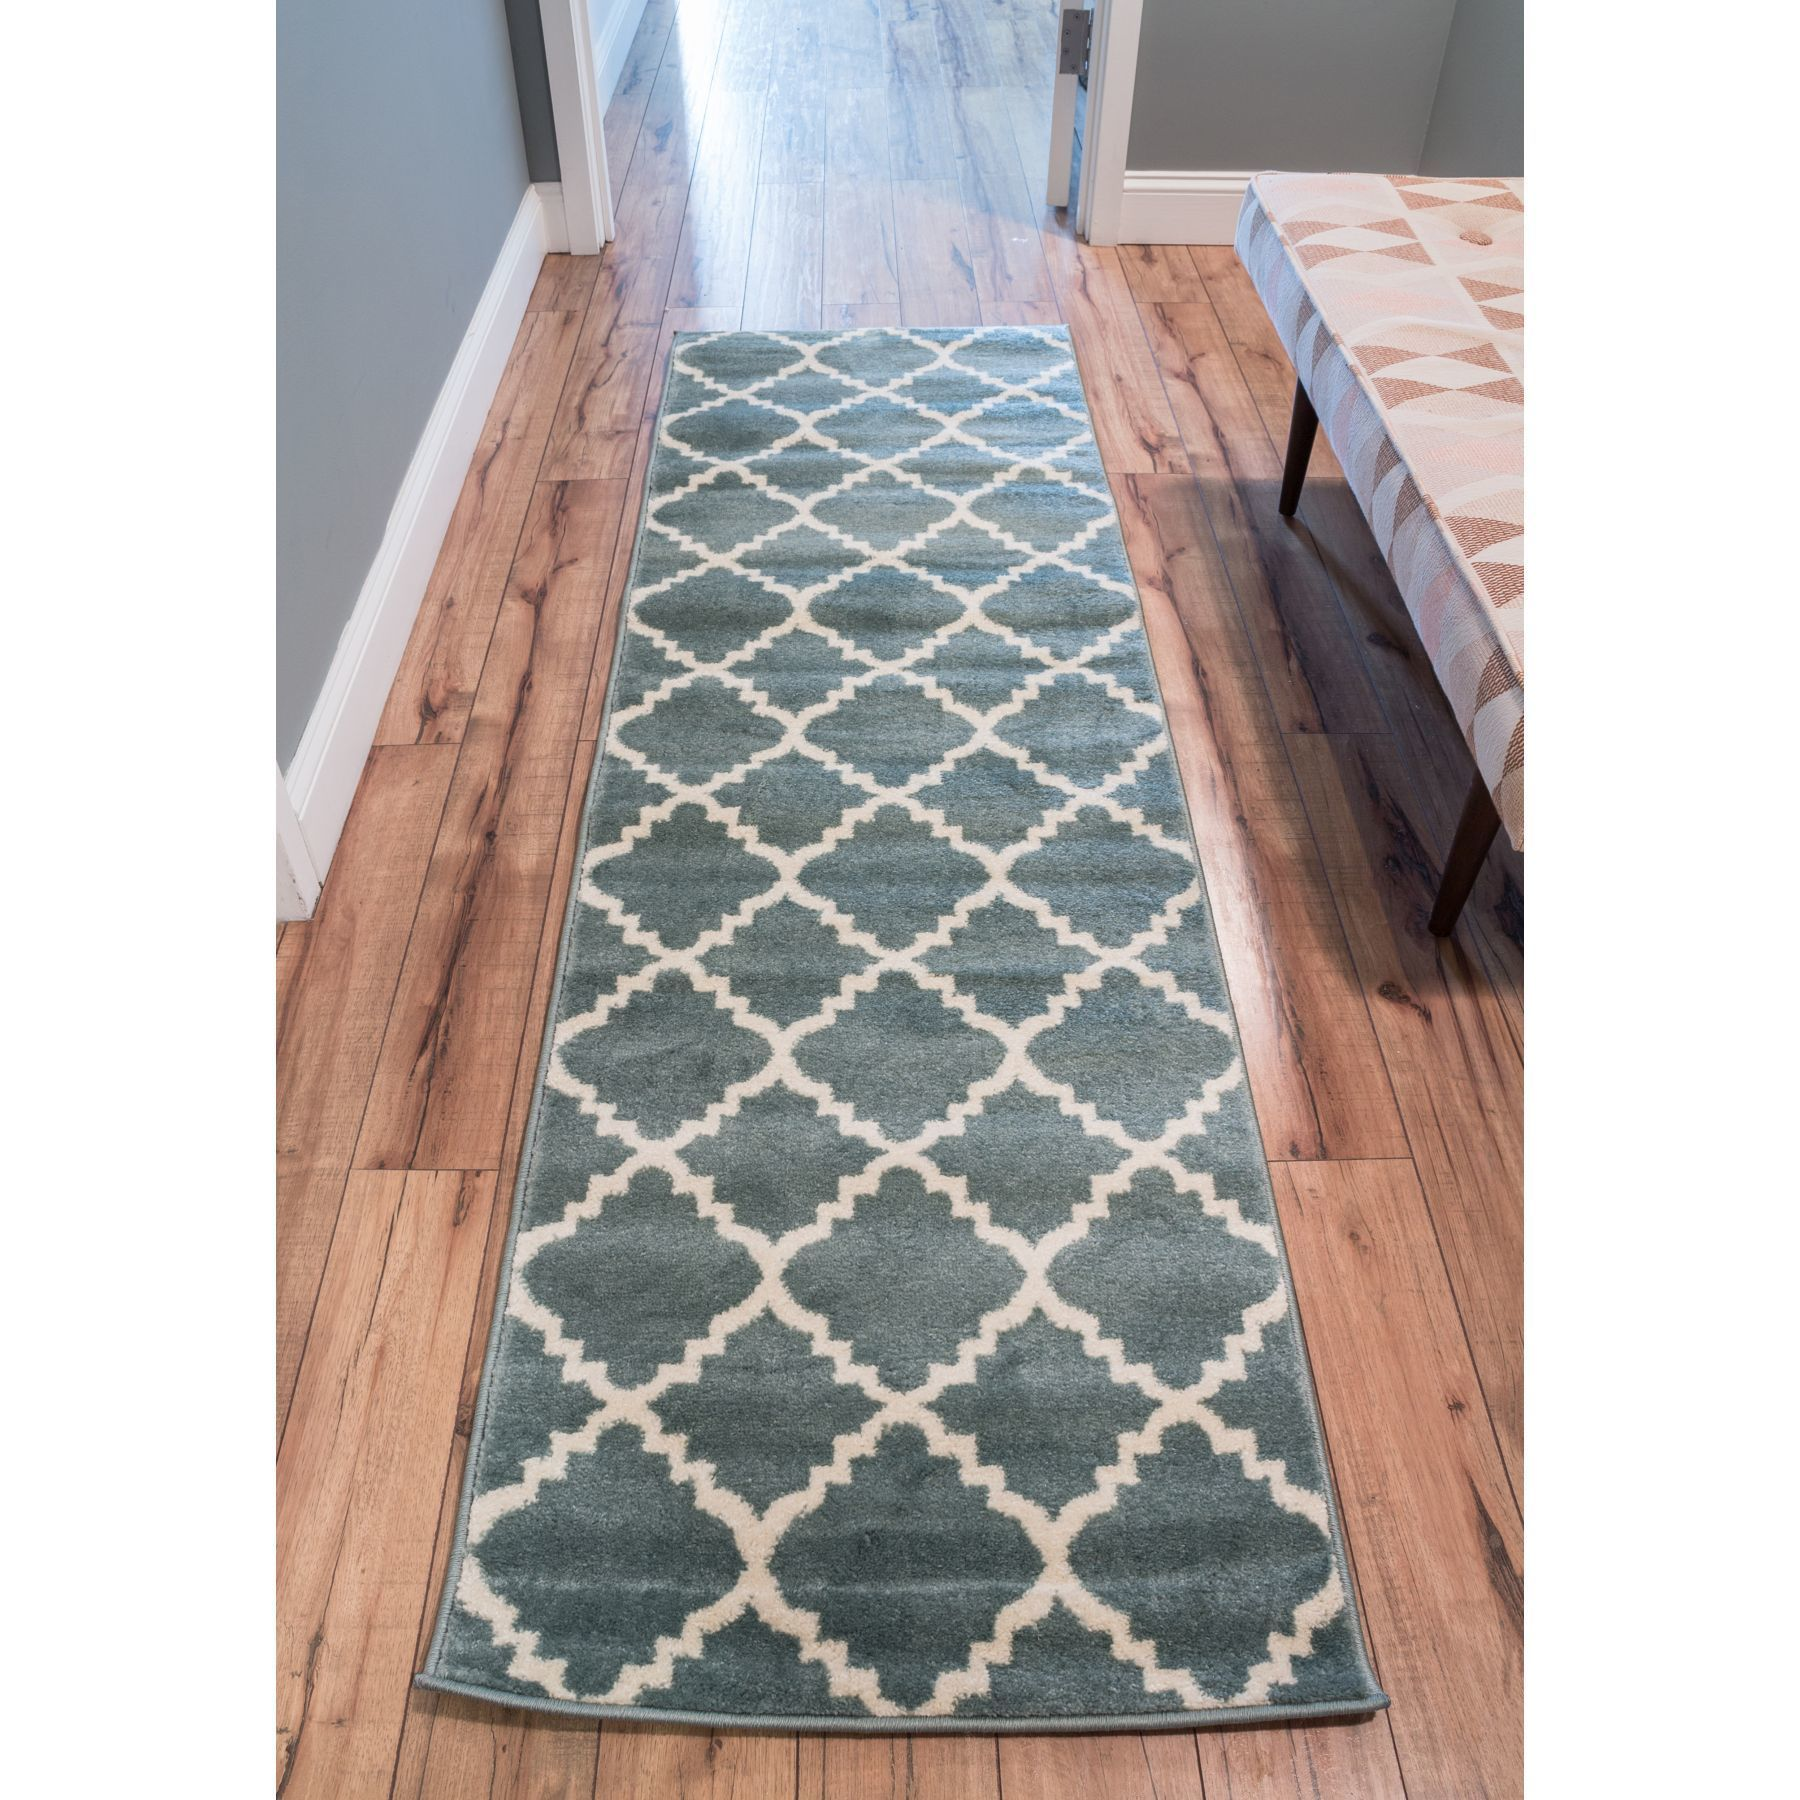 Well Woven Ellie Modern Bold Trellis Diamond Pattern Light Blue Runner Rug - 23 x 73 (Light Blue)